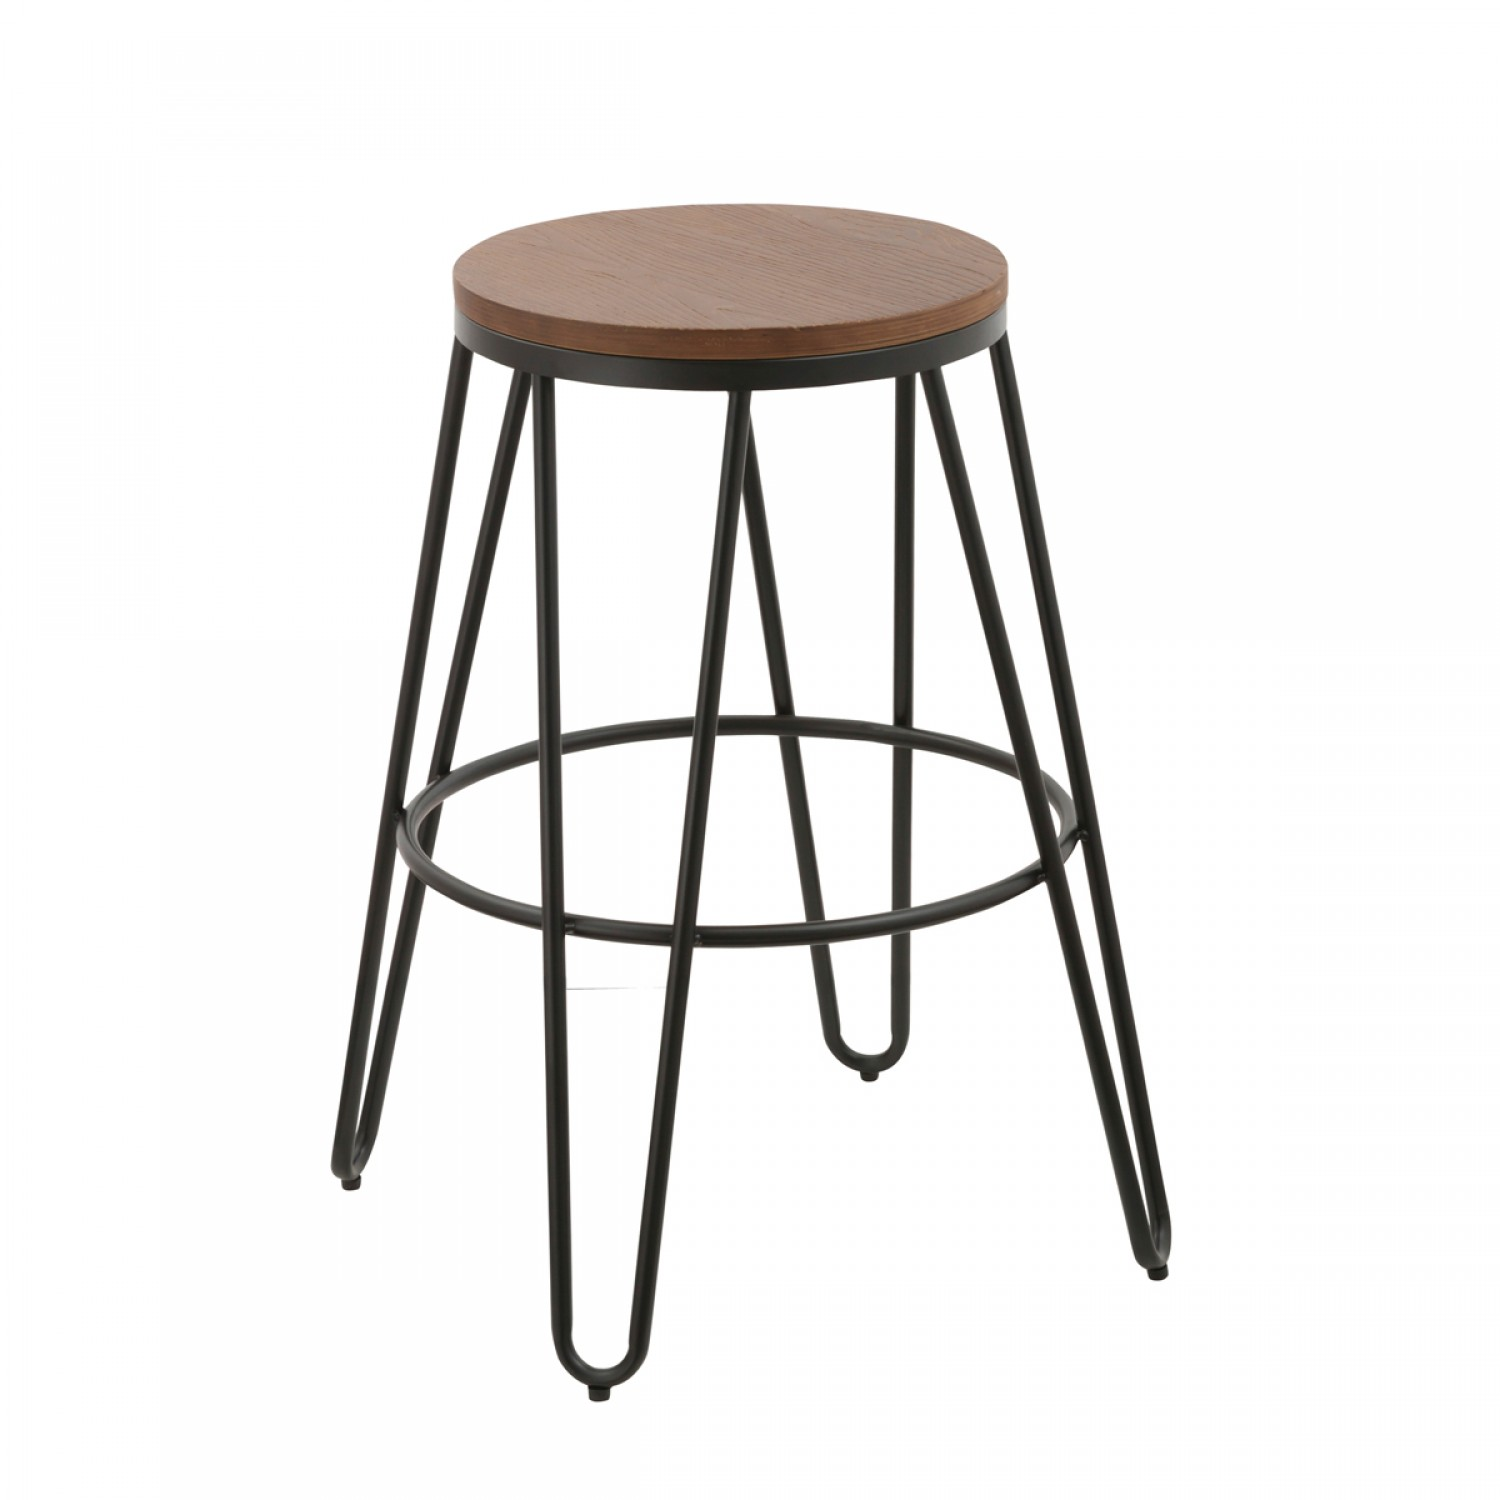 tabouret de bar loft bois et m tal noir lot de 2 koya. Black Bedroom Furniture Sets. Home Design Ideas